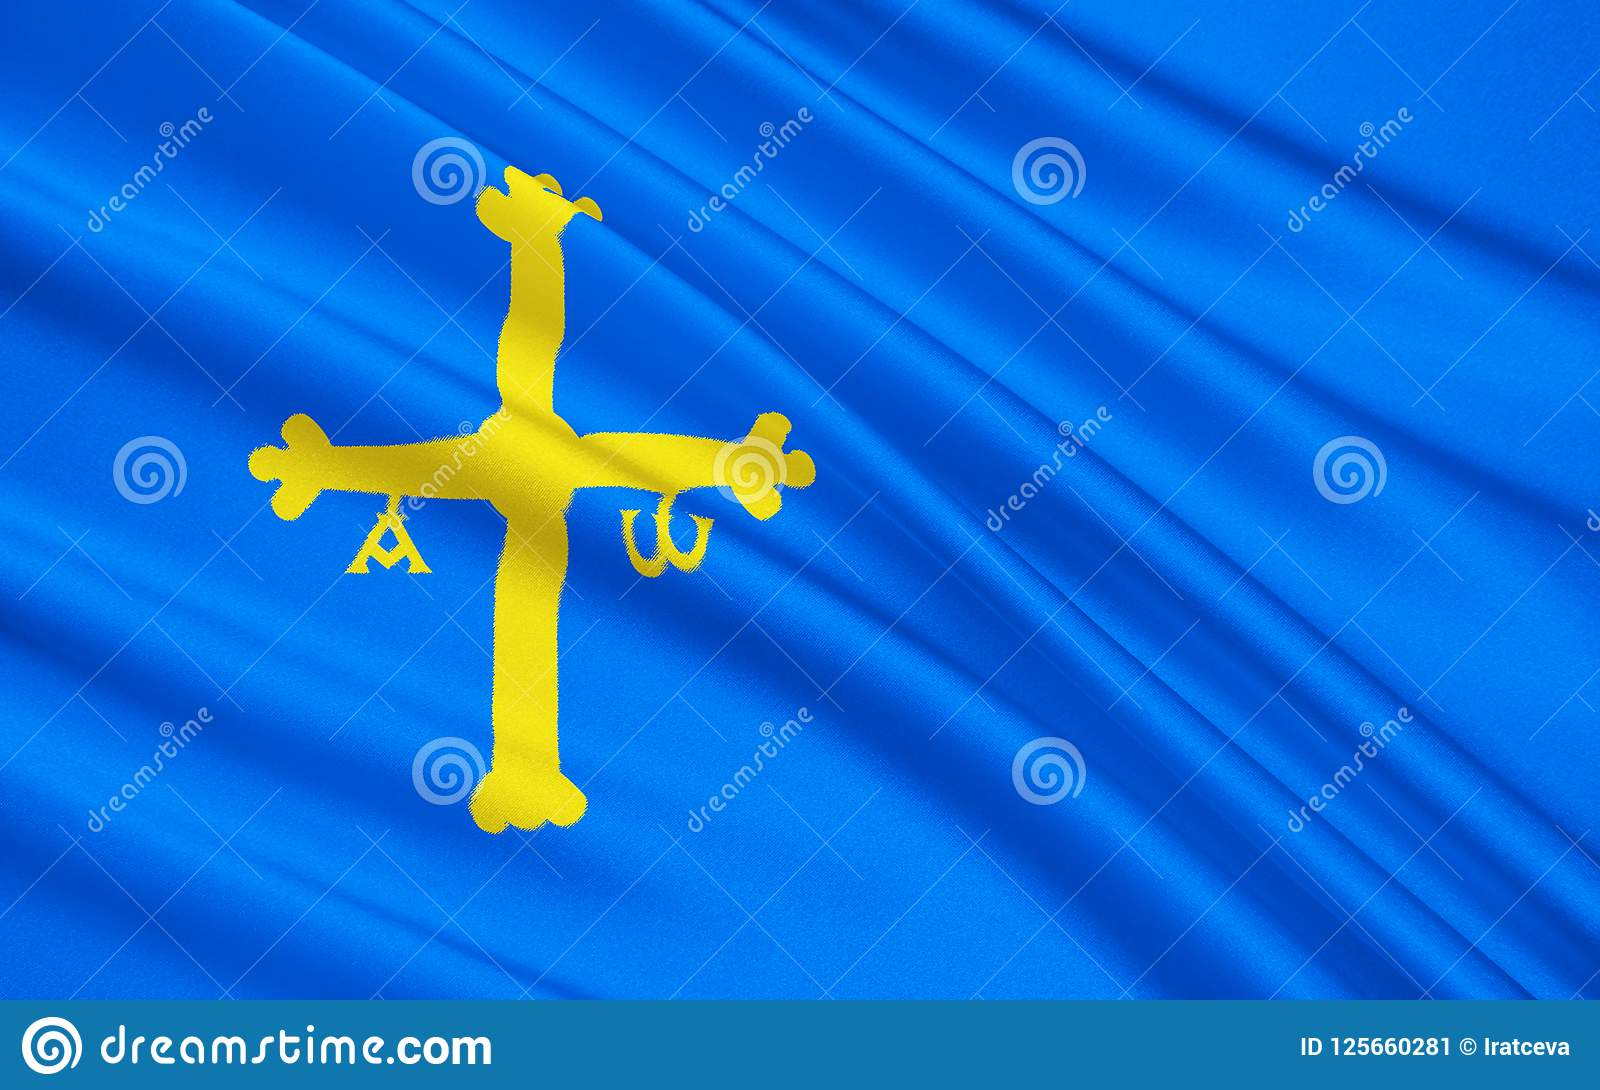 Flag Kingdom Asturias